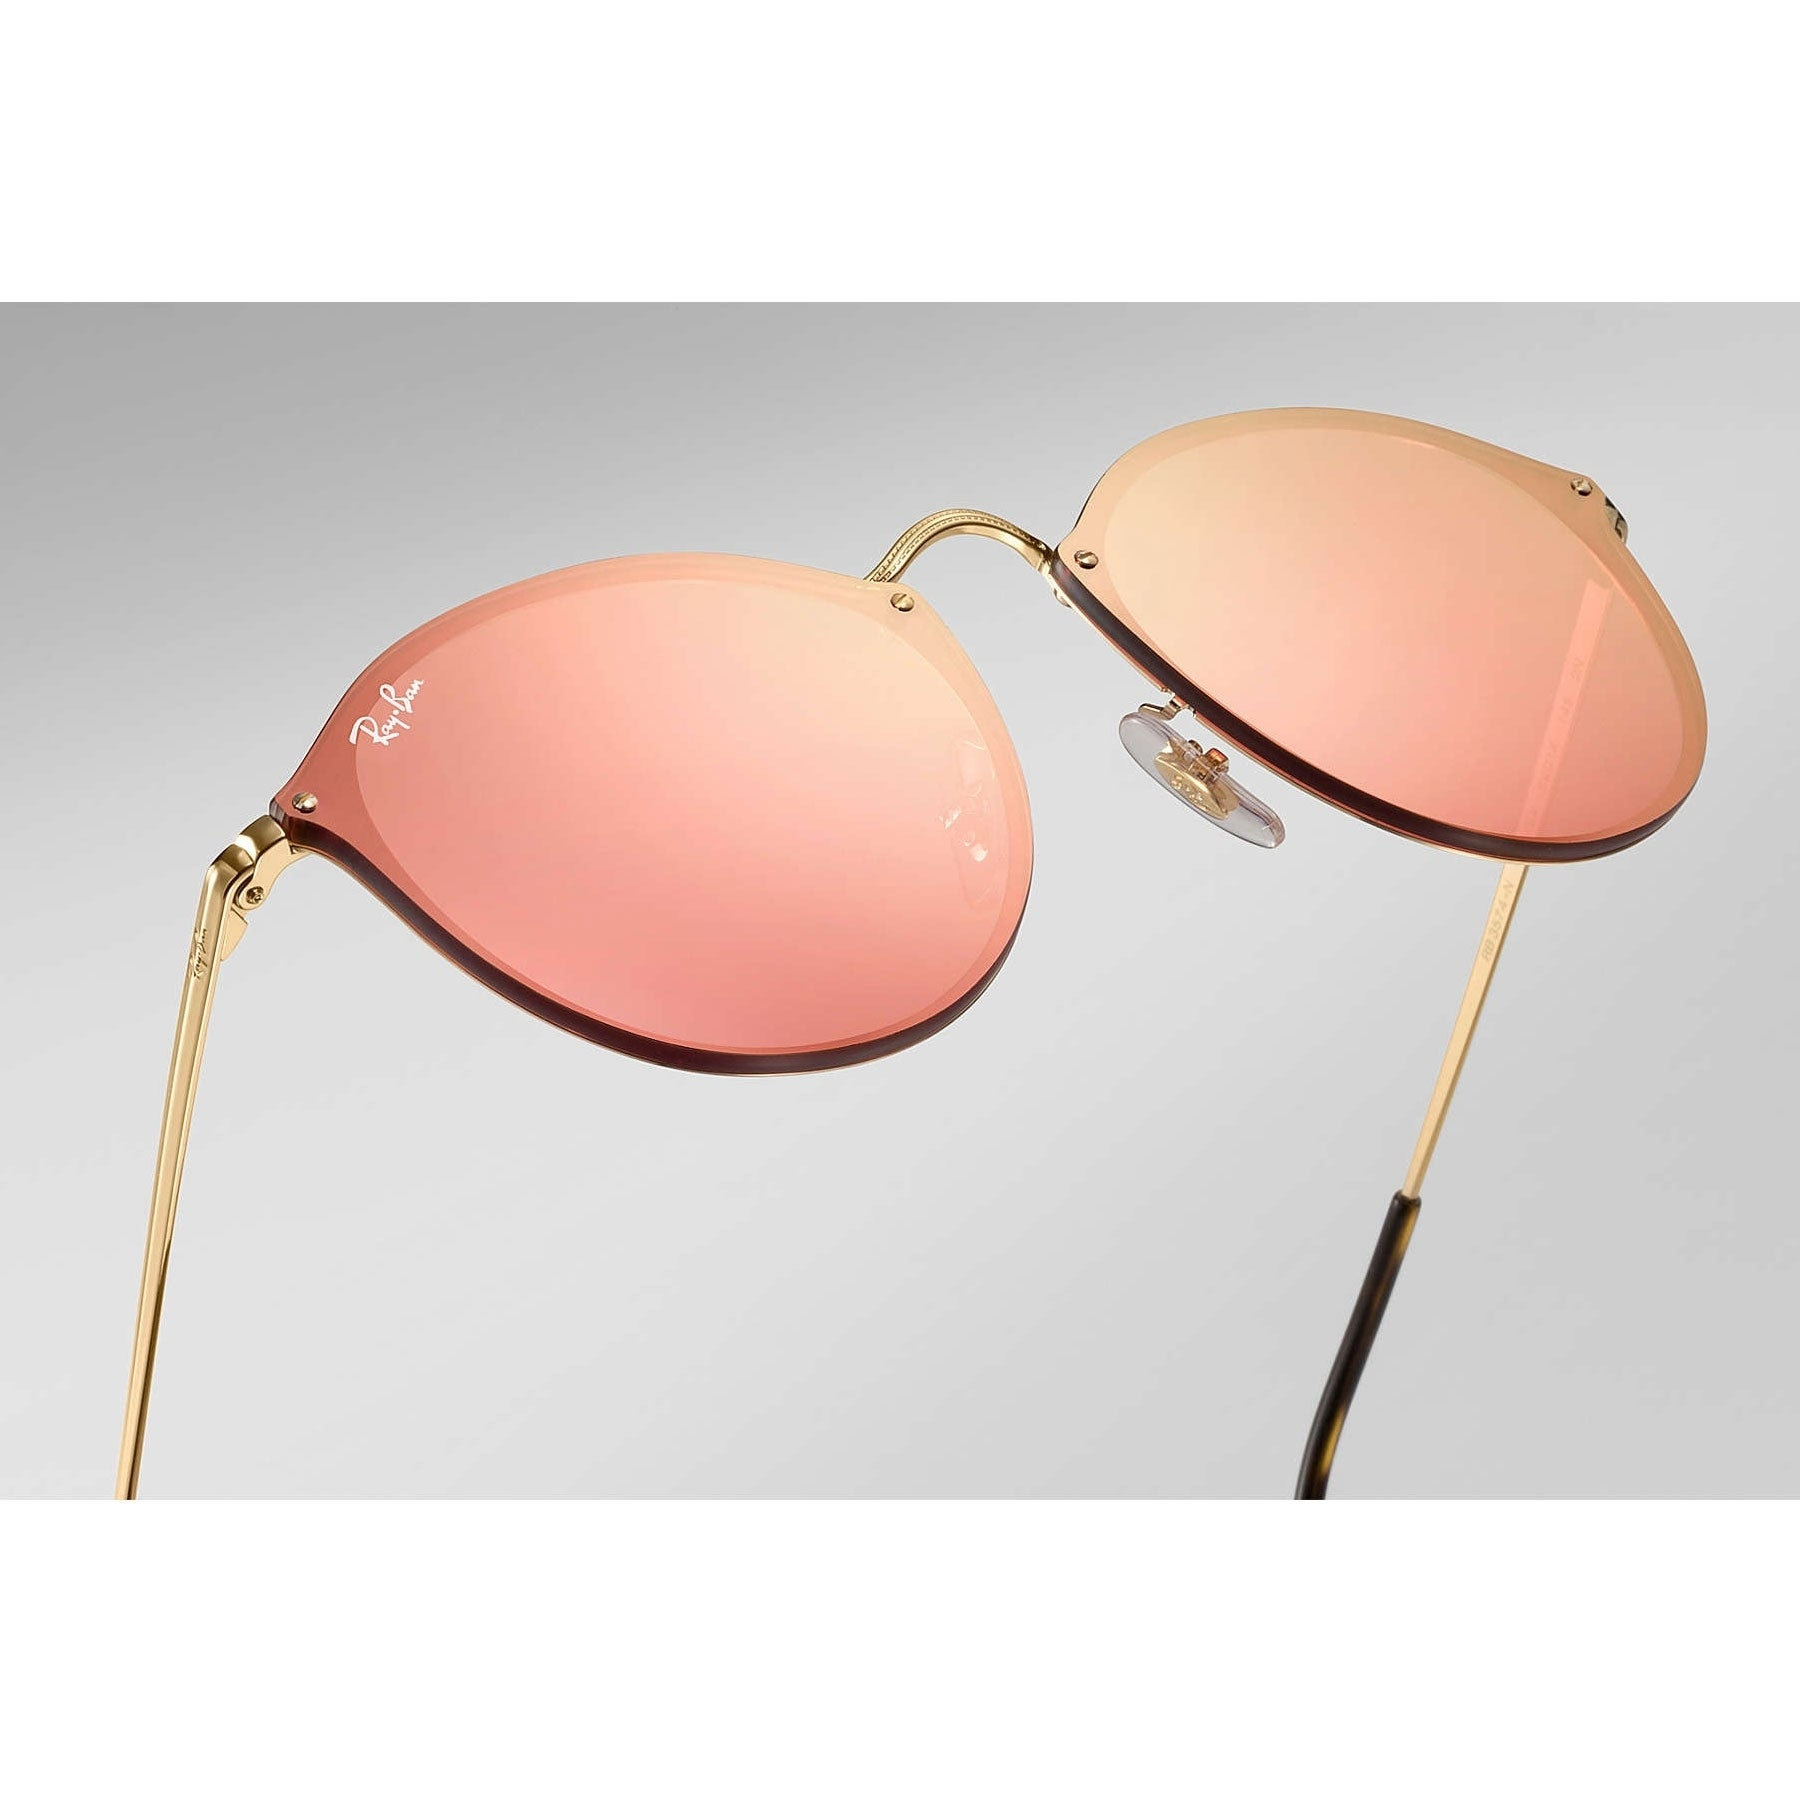 e463247dea Shop Ray-Ban RB3574N Blaze Round Sunglasses Gold  Pink Mirror 59mm - Free  Shipping Today - Overstock - 20602396